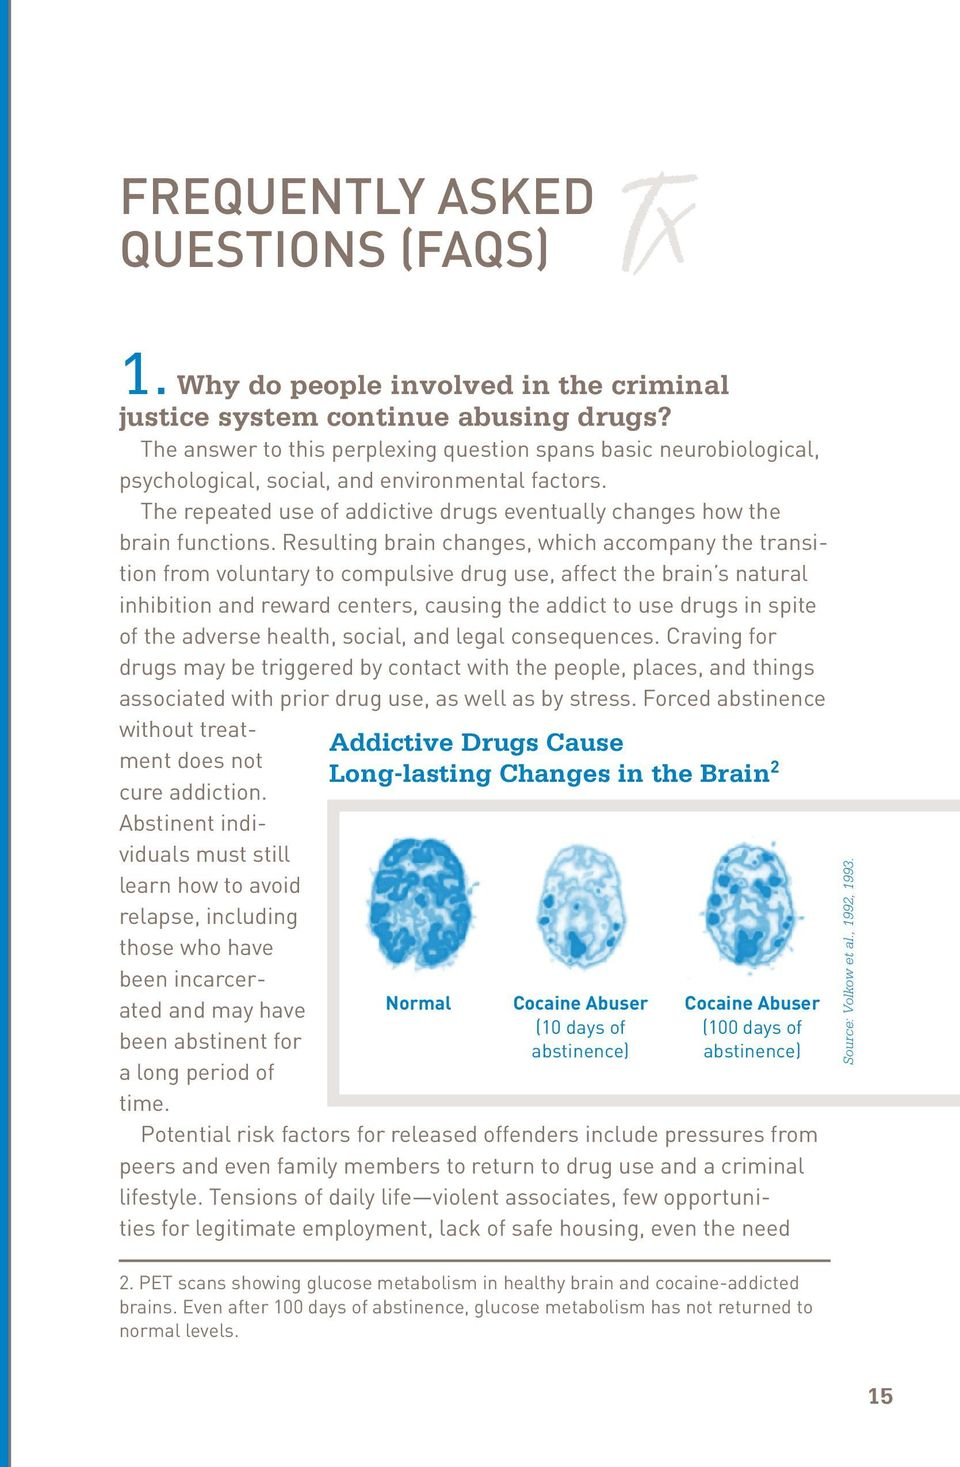 Resulting brain changes, which accompany the transition from voluntary to compulsive drug use, affect the brain s natural inhibition and reward centers, causing the addict to use drugs in spite of